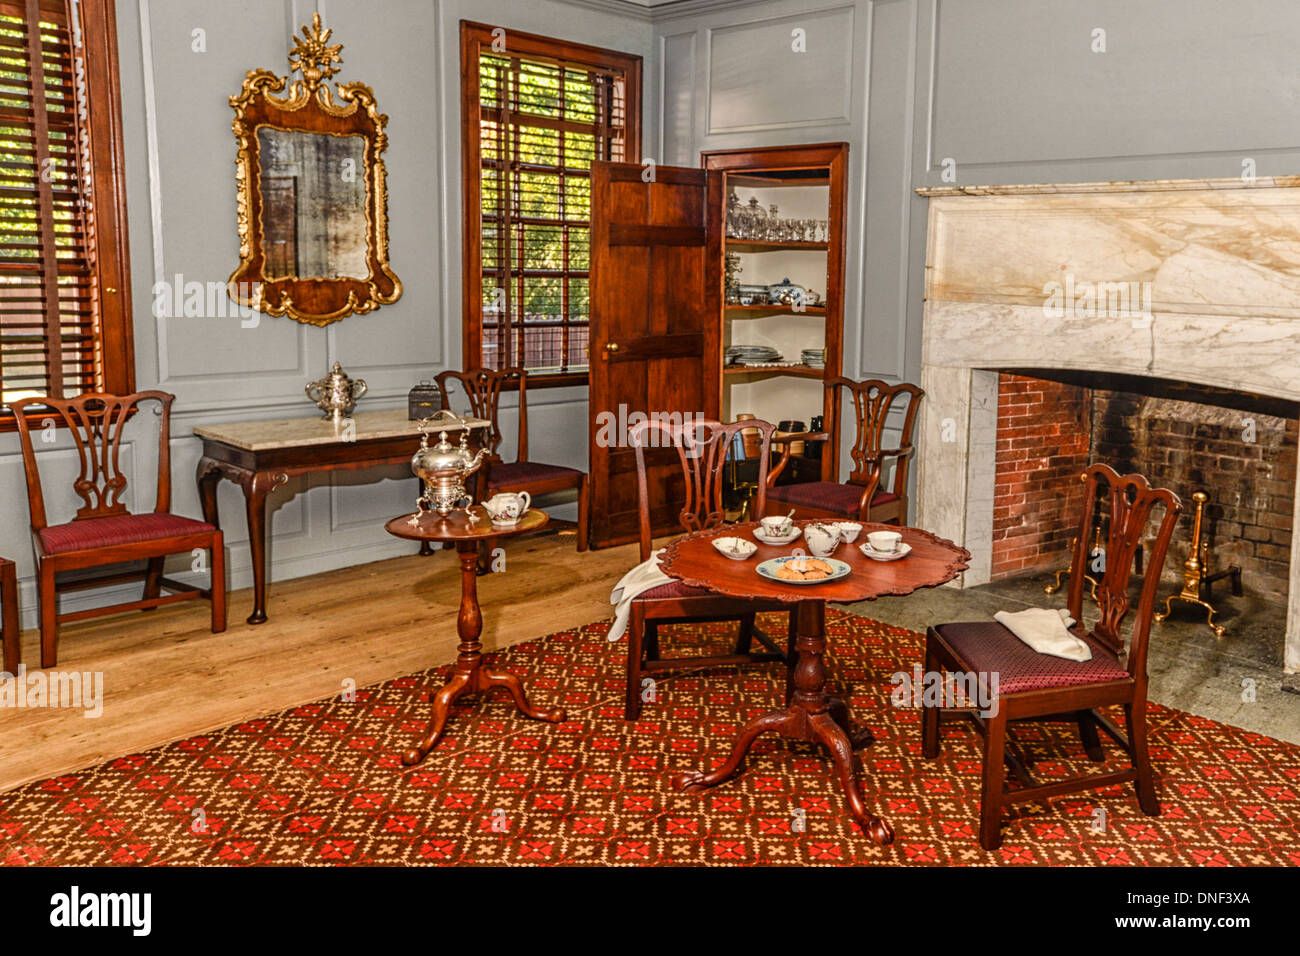 Peyton Randolph House Interior Room And Furnishings In